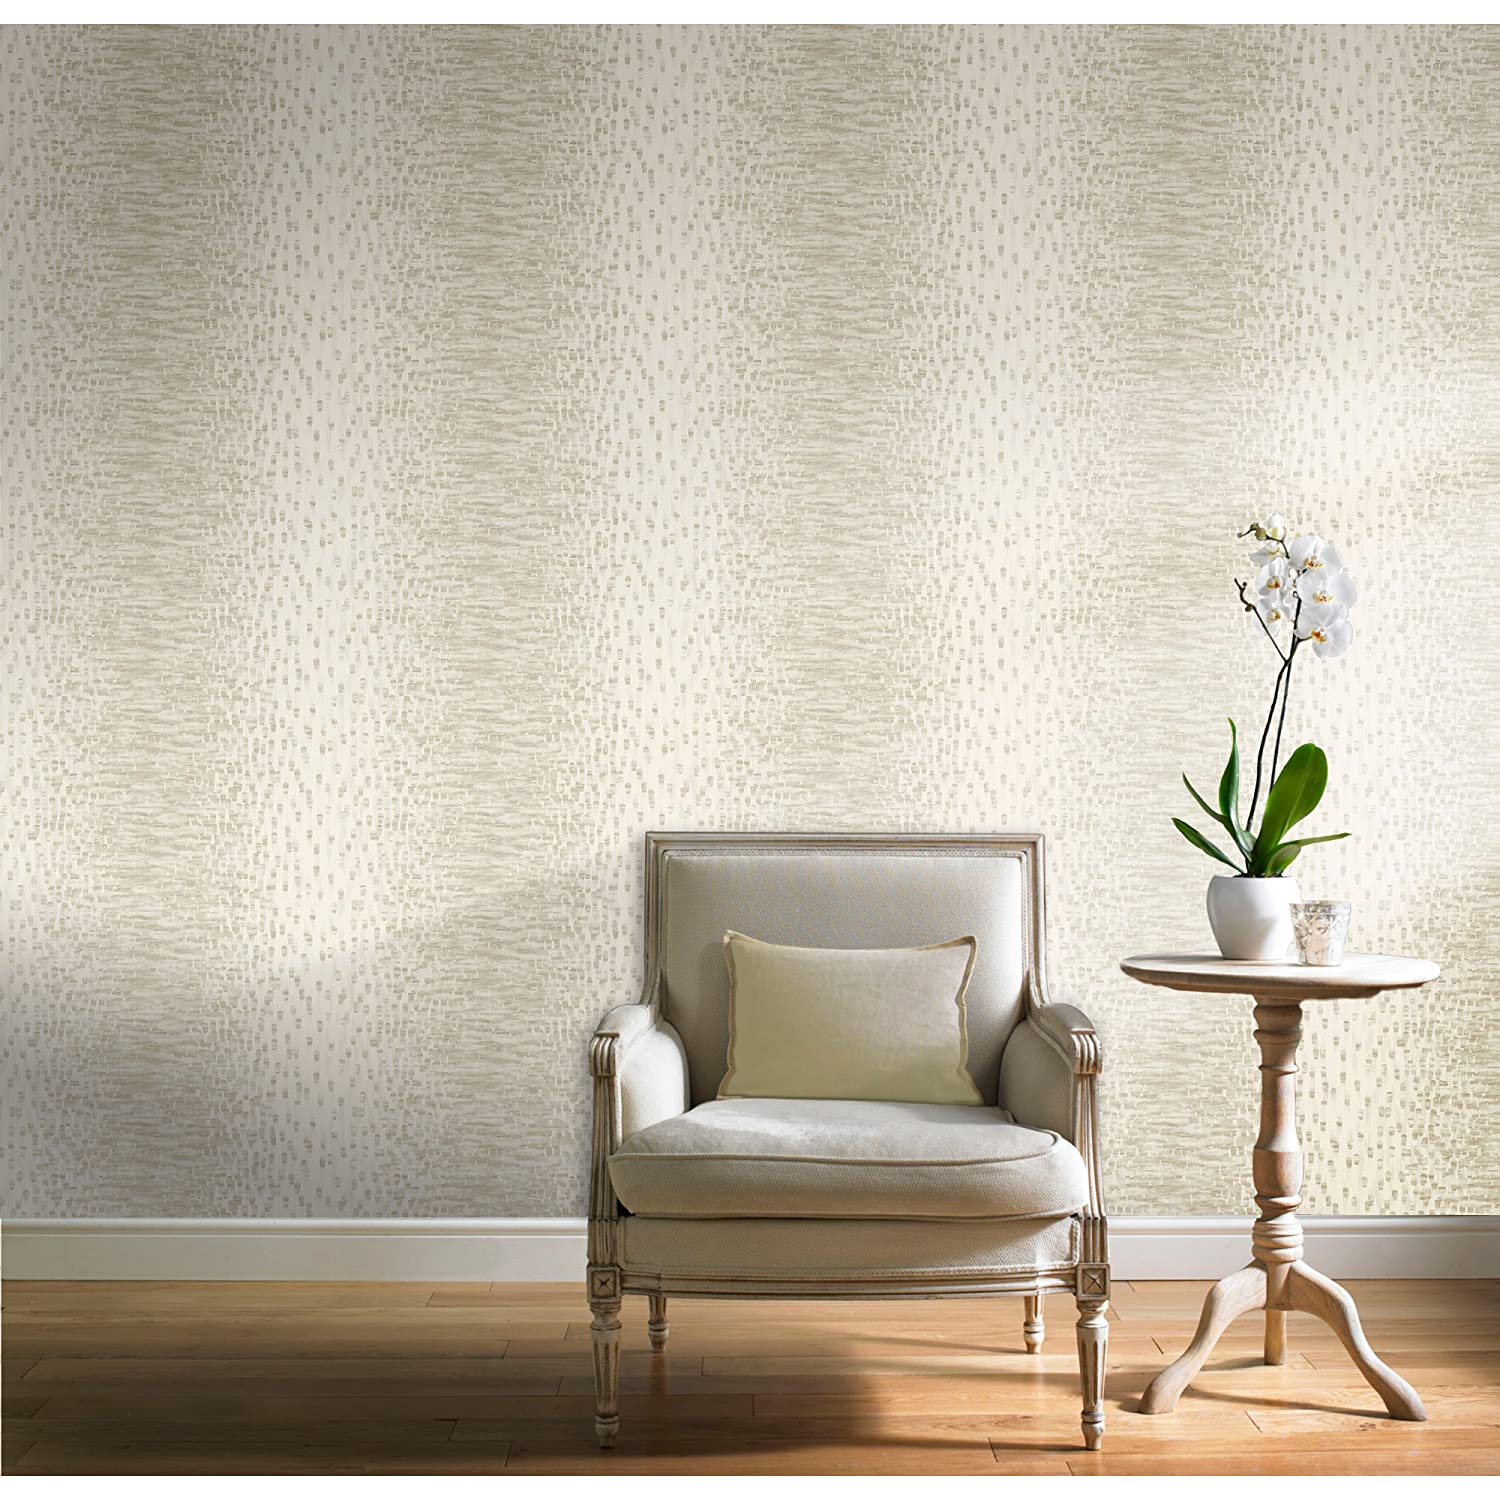 Royal House Vinyl Wallpaper Illusion Cream A10202 Amazoncouk